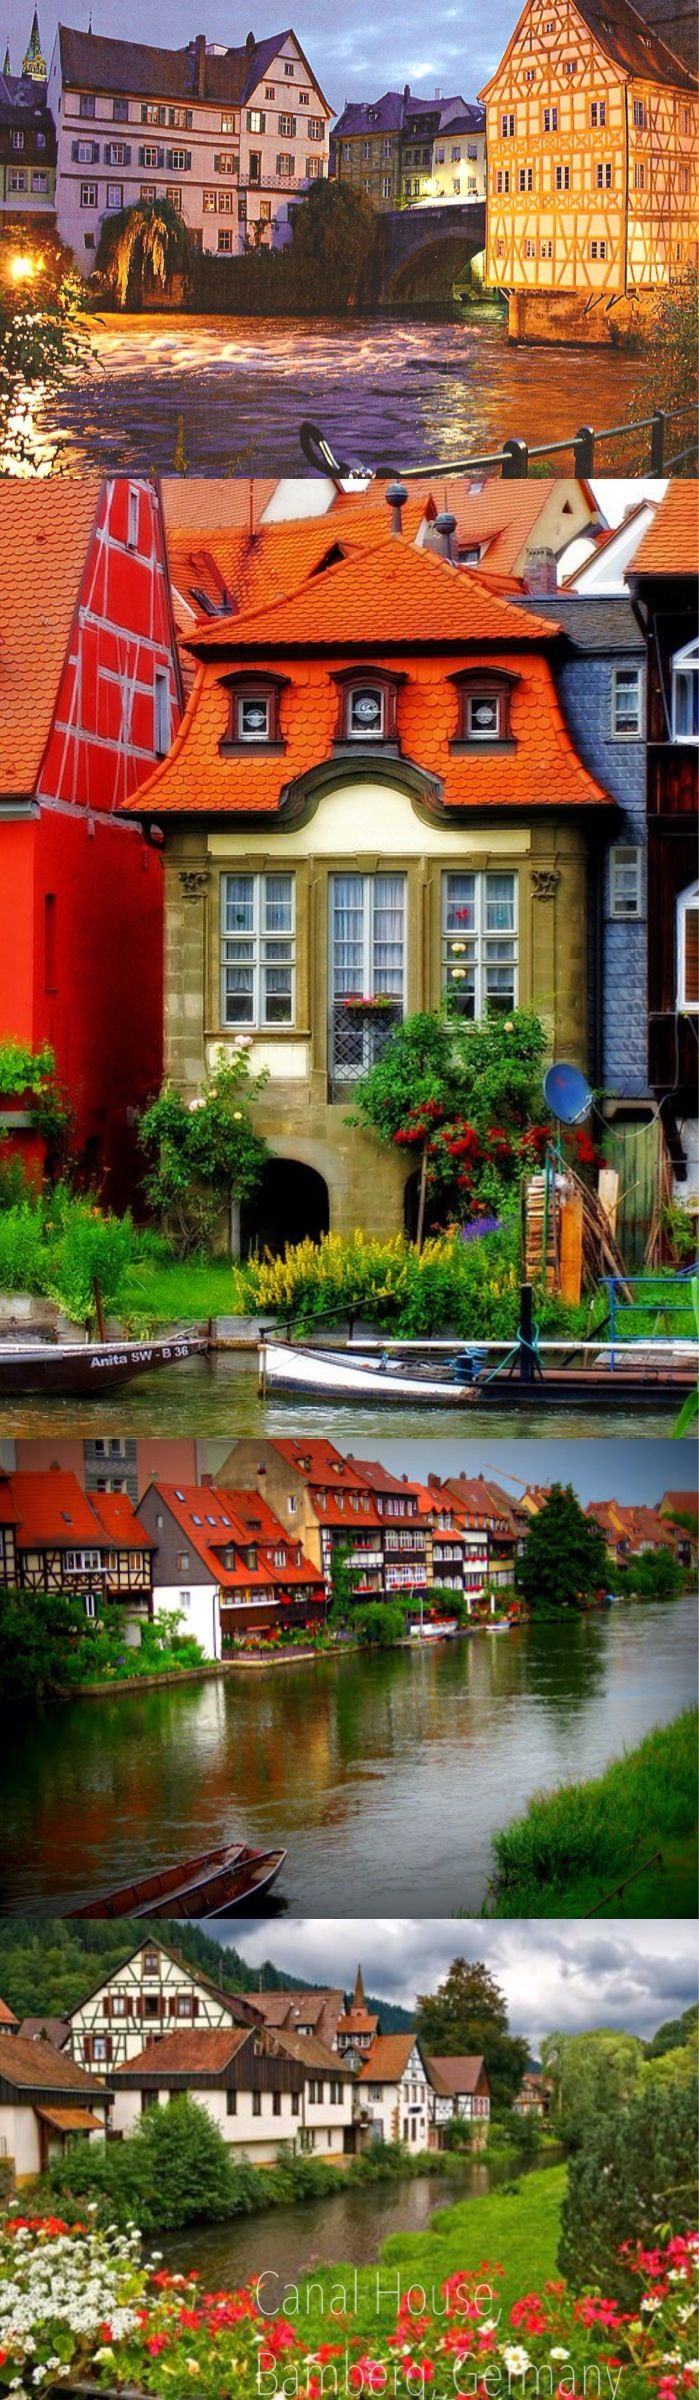 Germany Canal House, Bamberg, Germany